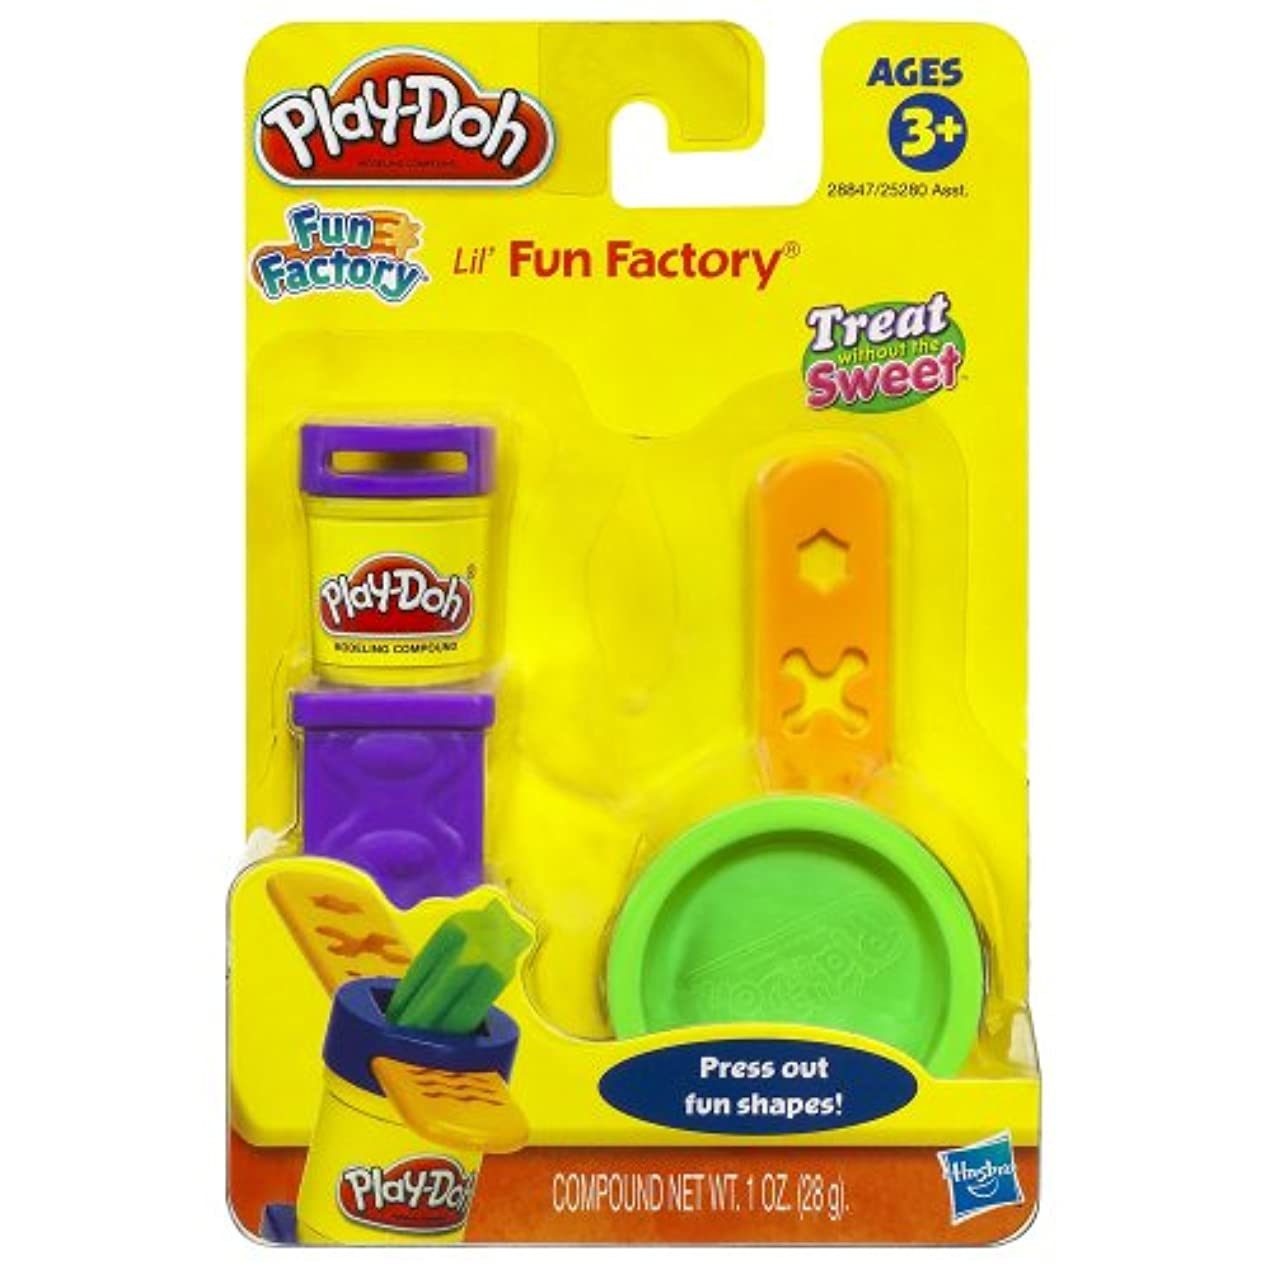 PLAY-DOH FUN FACTORY TREAT WITHOUT THE SWEET